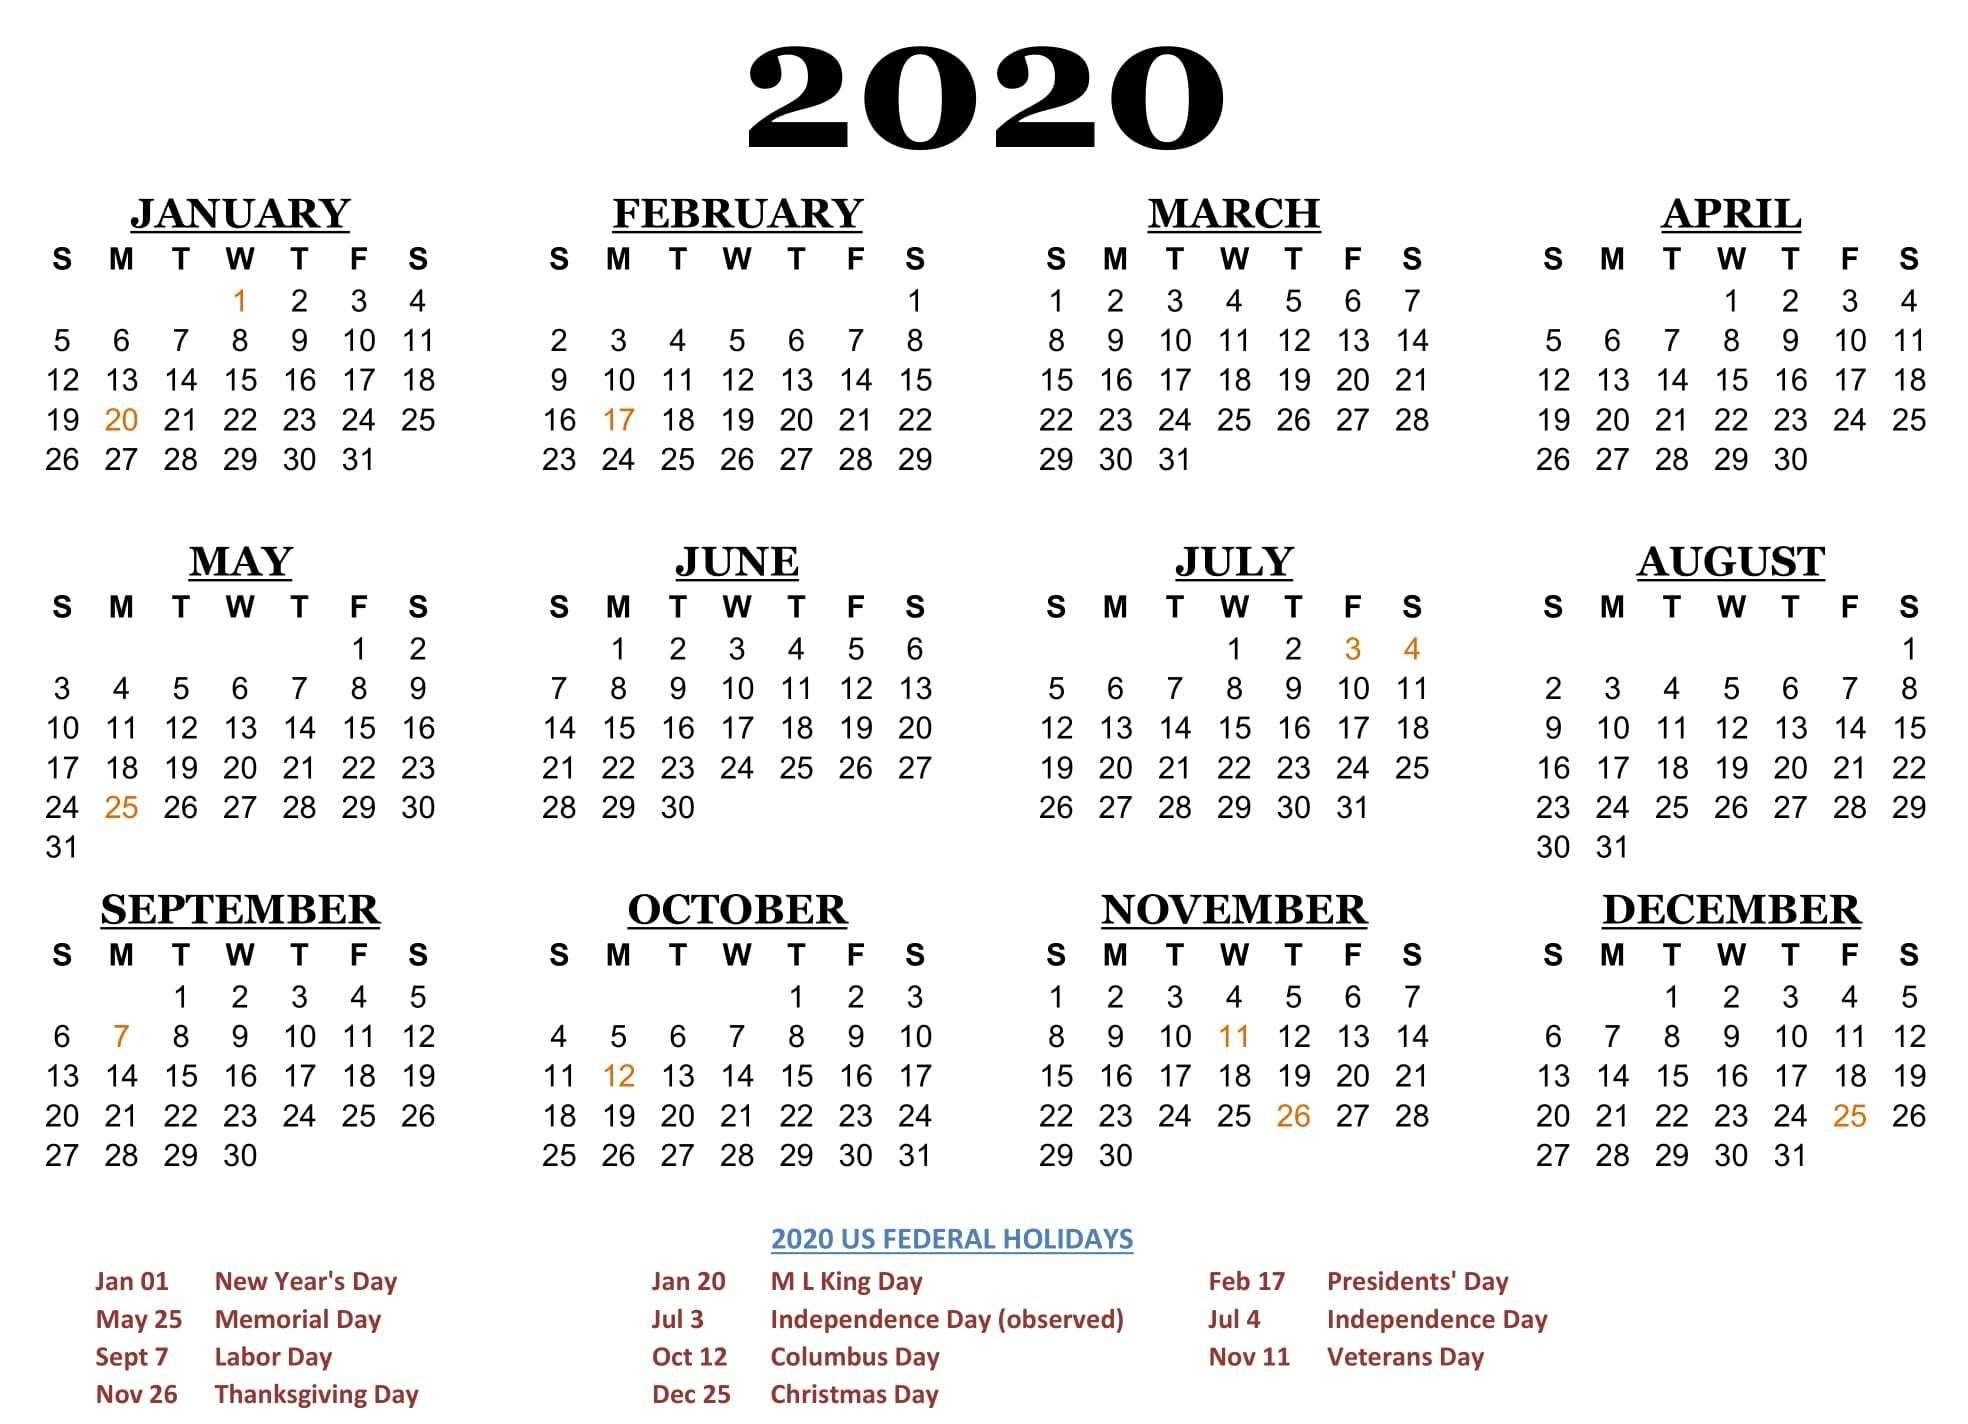 2020 One Page Calendar Printable Download | Calendarbuzz